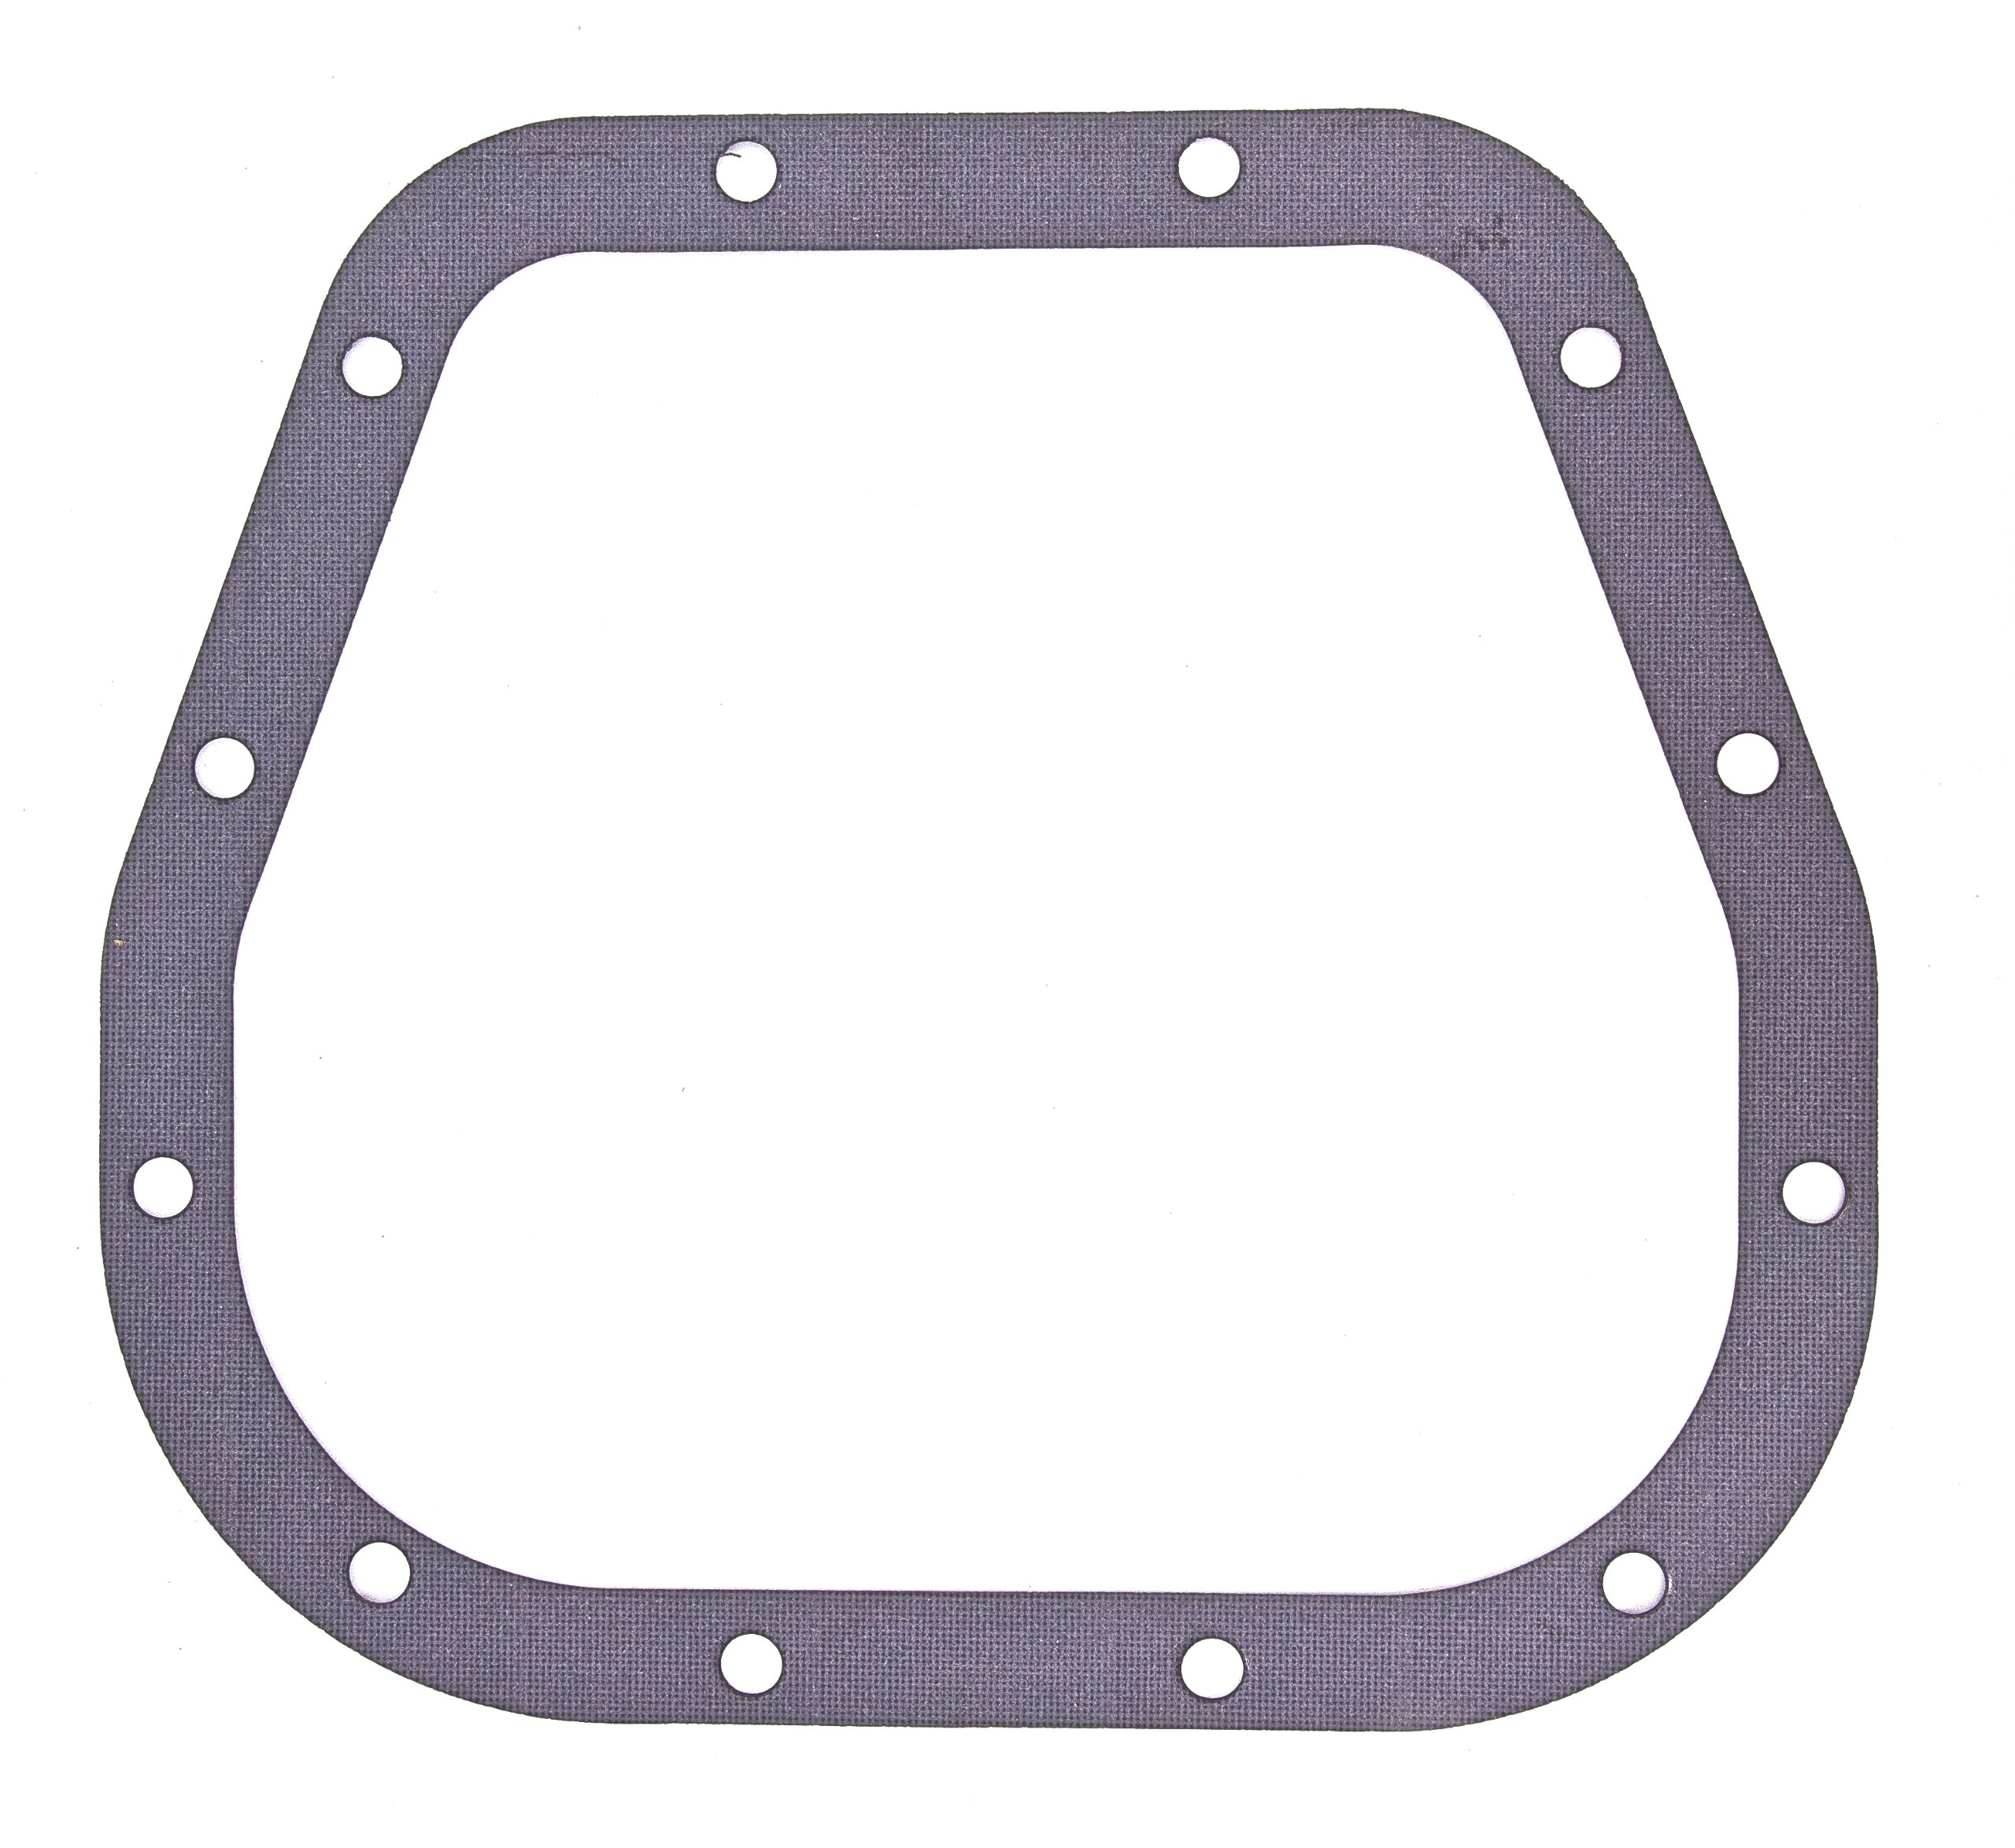 Spicer RD52003 Differential Cover Gasket for Ford 9.75'' Axle by Spicer